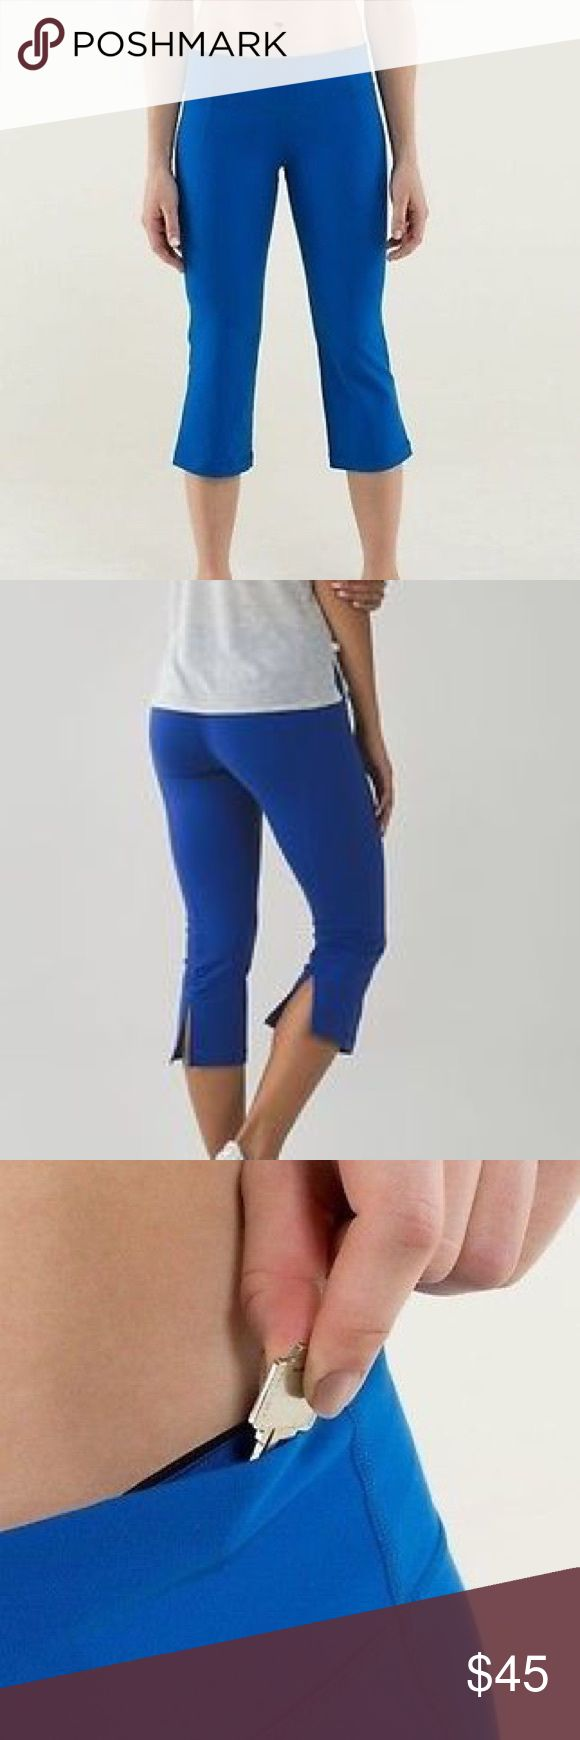 Lululemon Electric Blue Gather & Crow Capri Pants Lululemon Gather and crow electric blue Capri pants size 6. Mint condition.   A tight-knit version of our Luon® fabric, sweat-wicking Full-On® Luon is four-way stretch and provides incredible support and coverage  incredible support and coverage sweat-wicking four-way stretch cottony-soft handfeel naturally breathable LYCRA®  Added LYCRA® fibre for great shape retention  stretch great shape retention long-lasting comfort lululemon athletica…